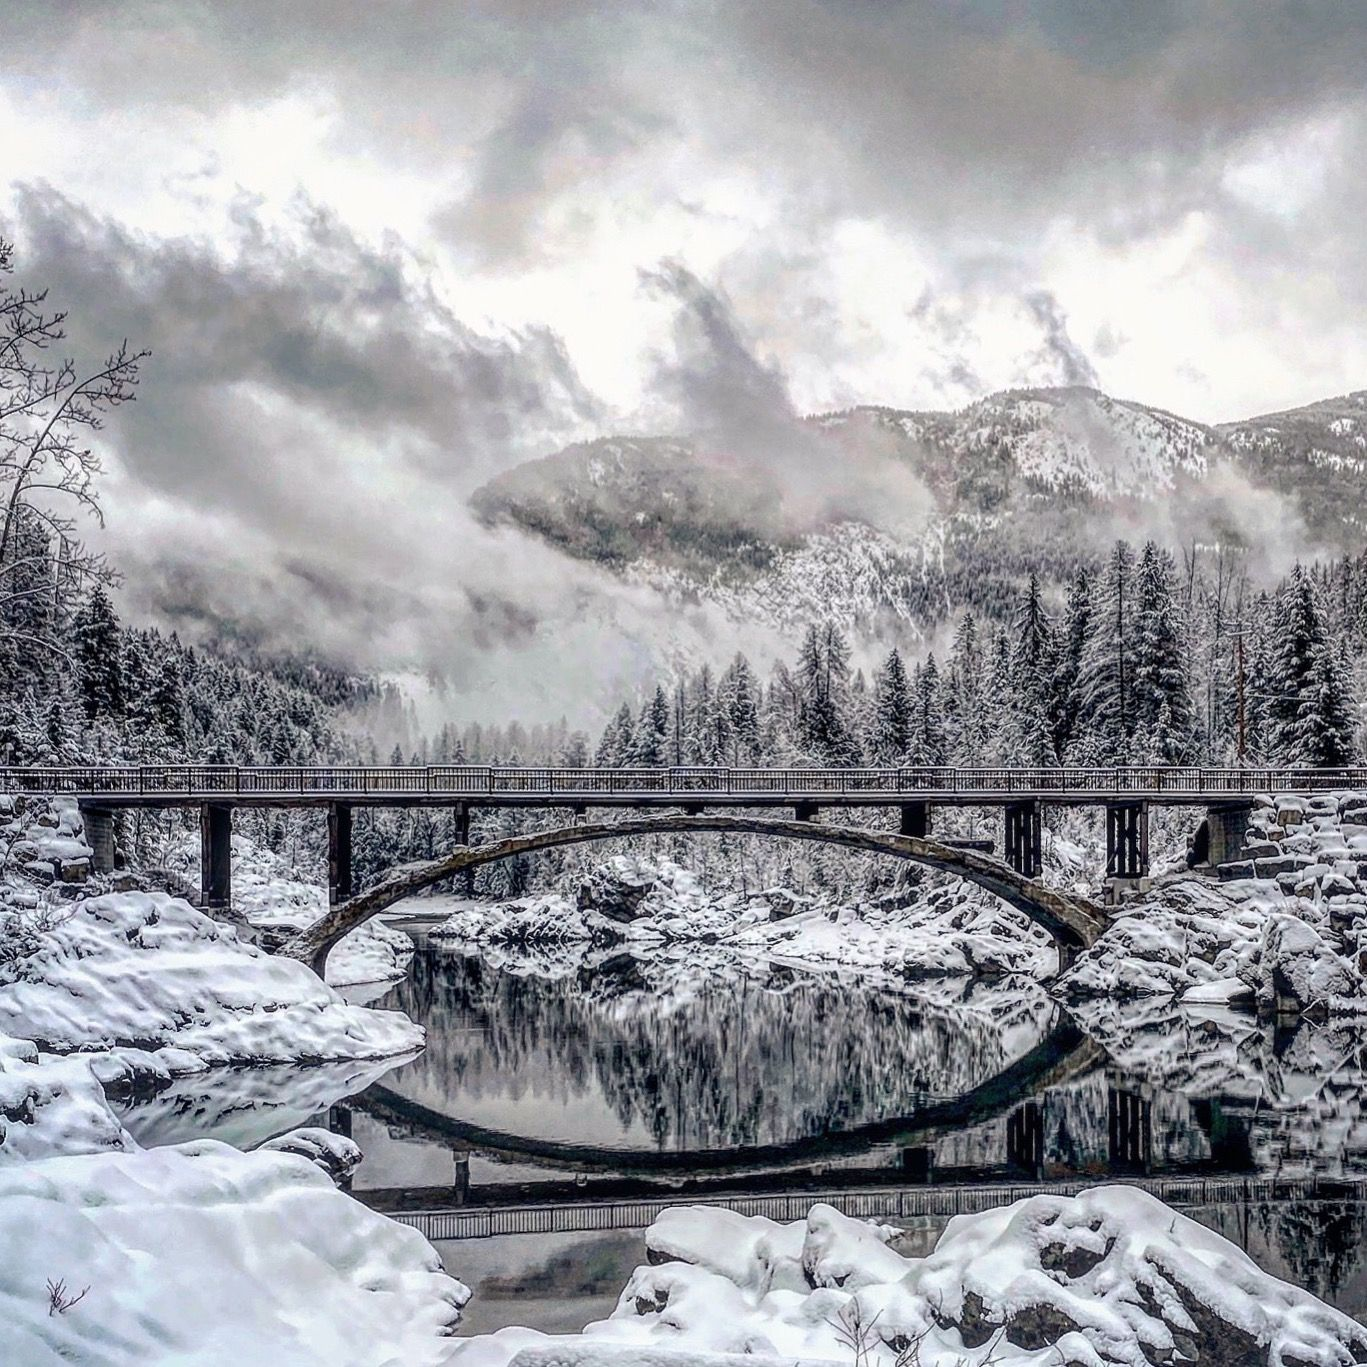 18 Winter in Yellowstone and Glacier National Parks